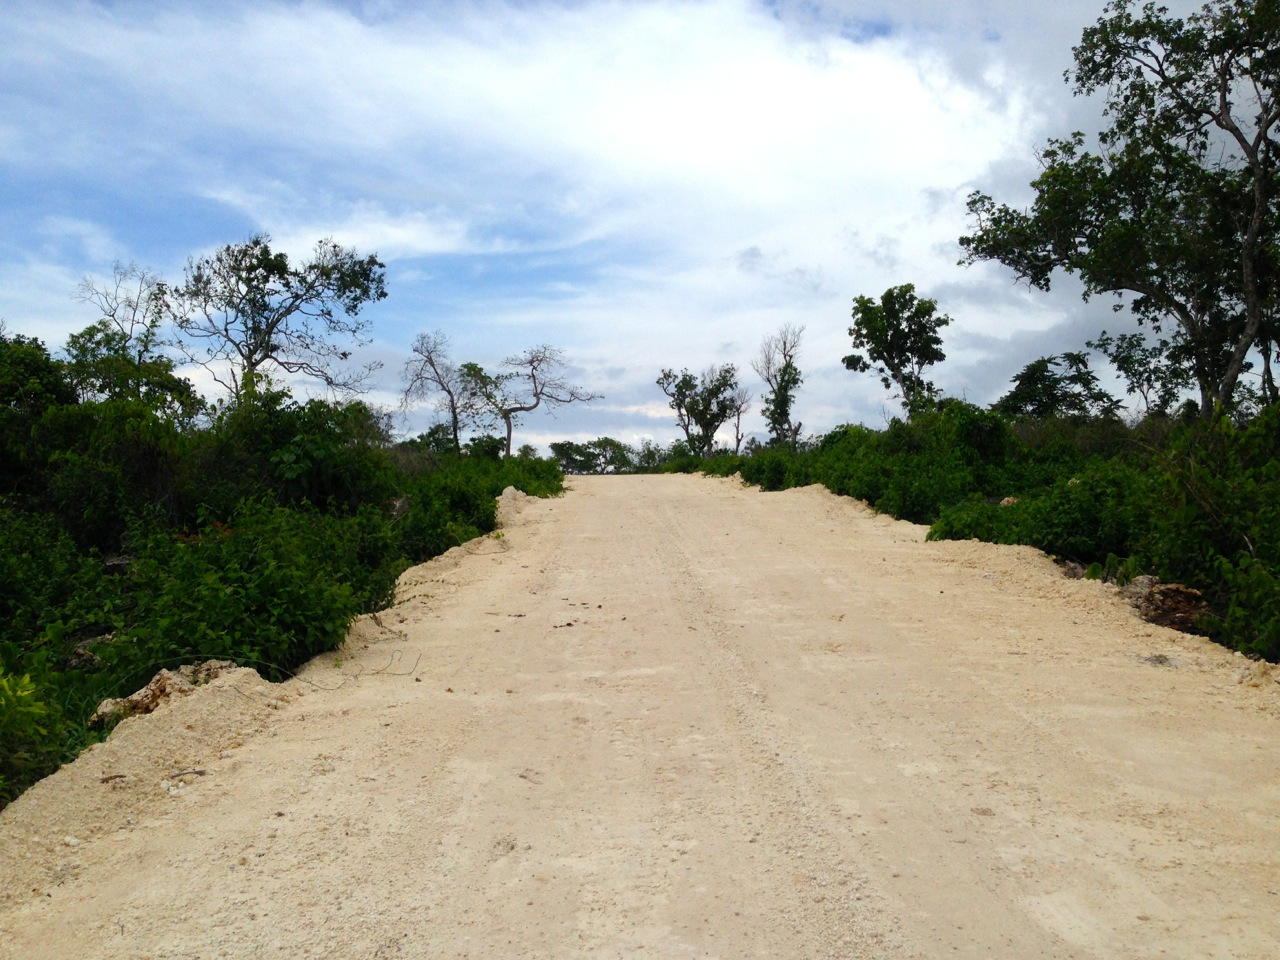 sumba-tambolaka-cliff-for-sale-access-road